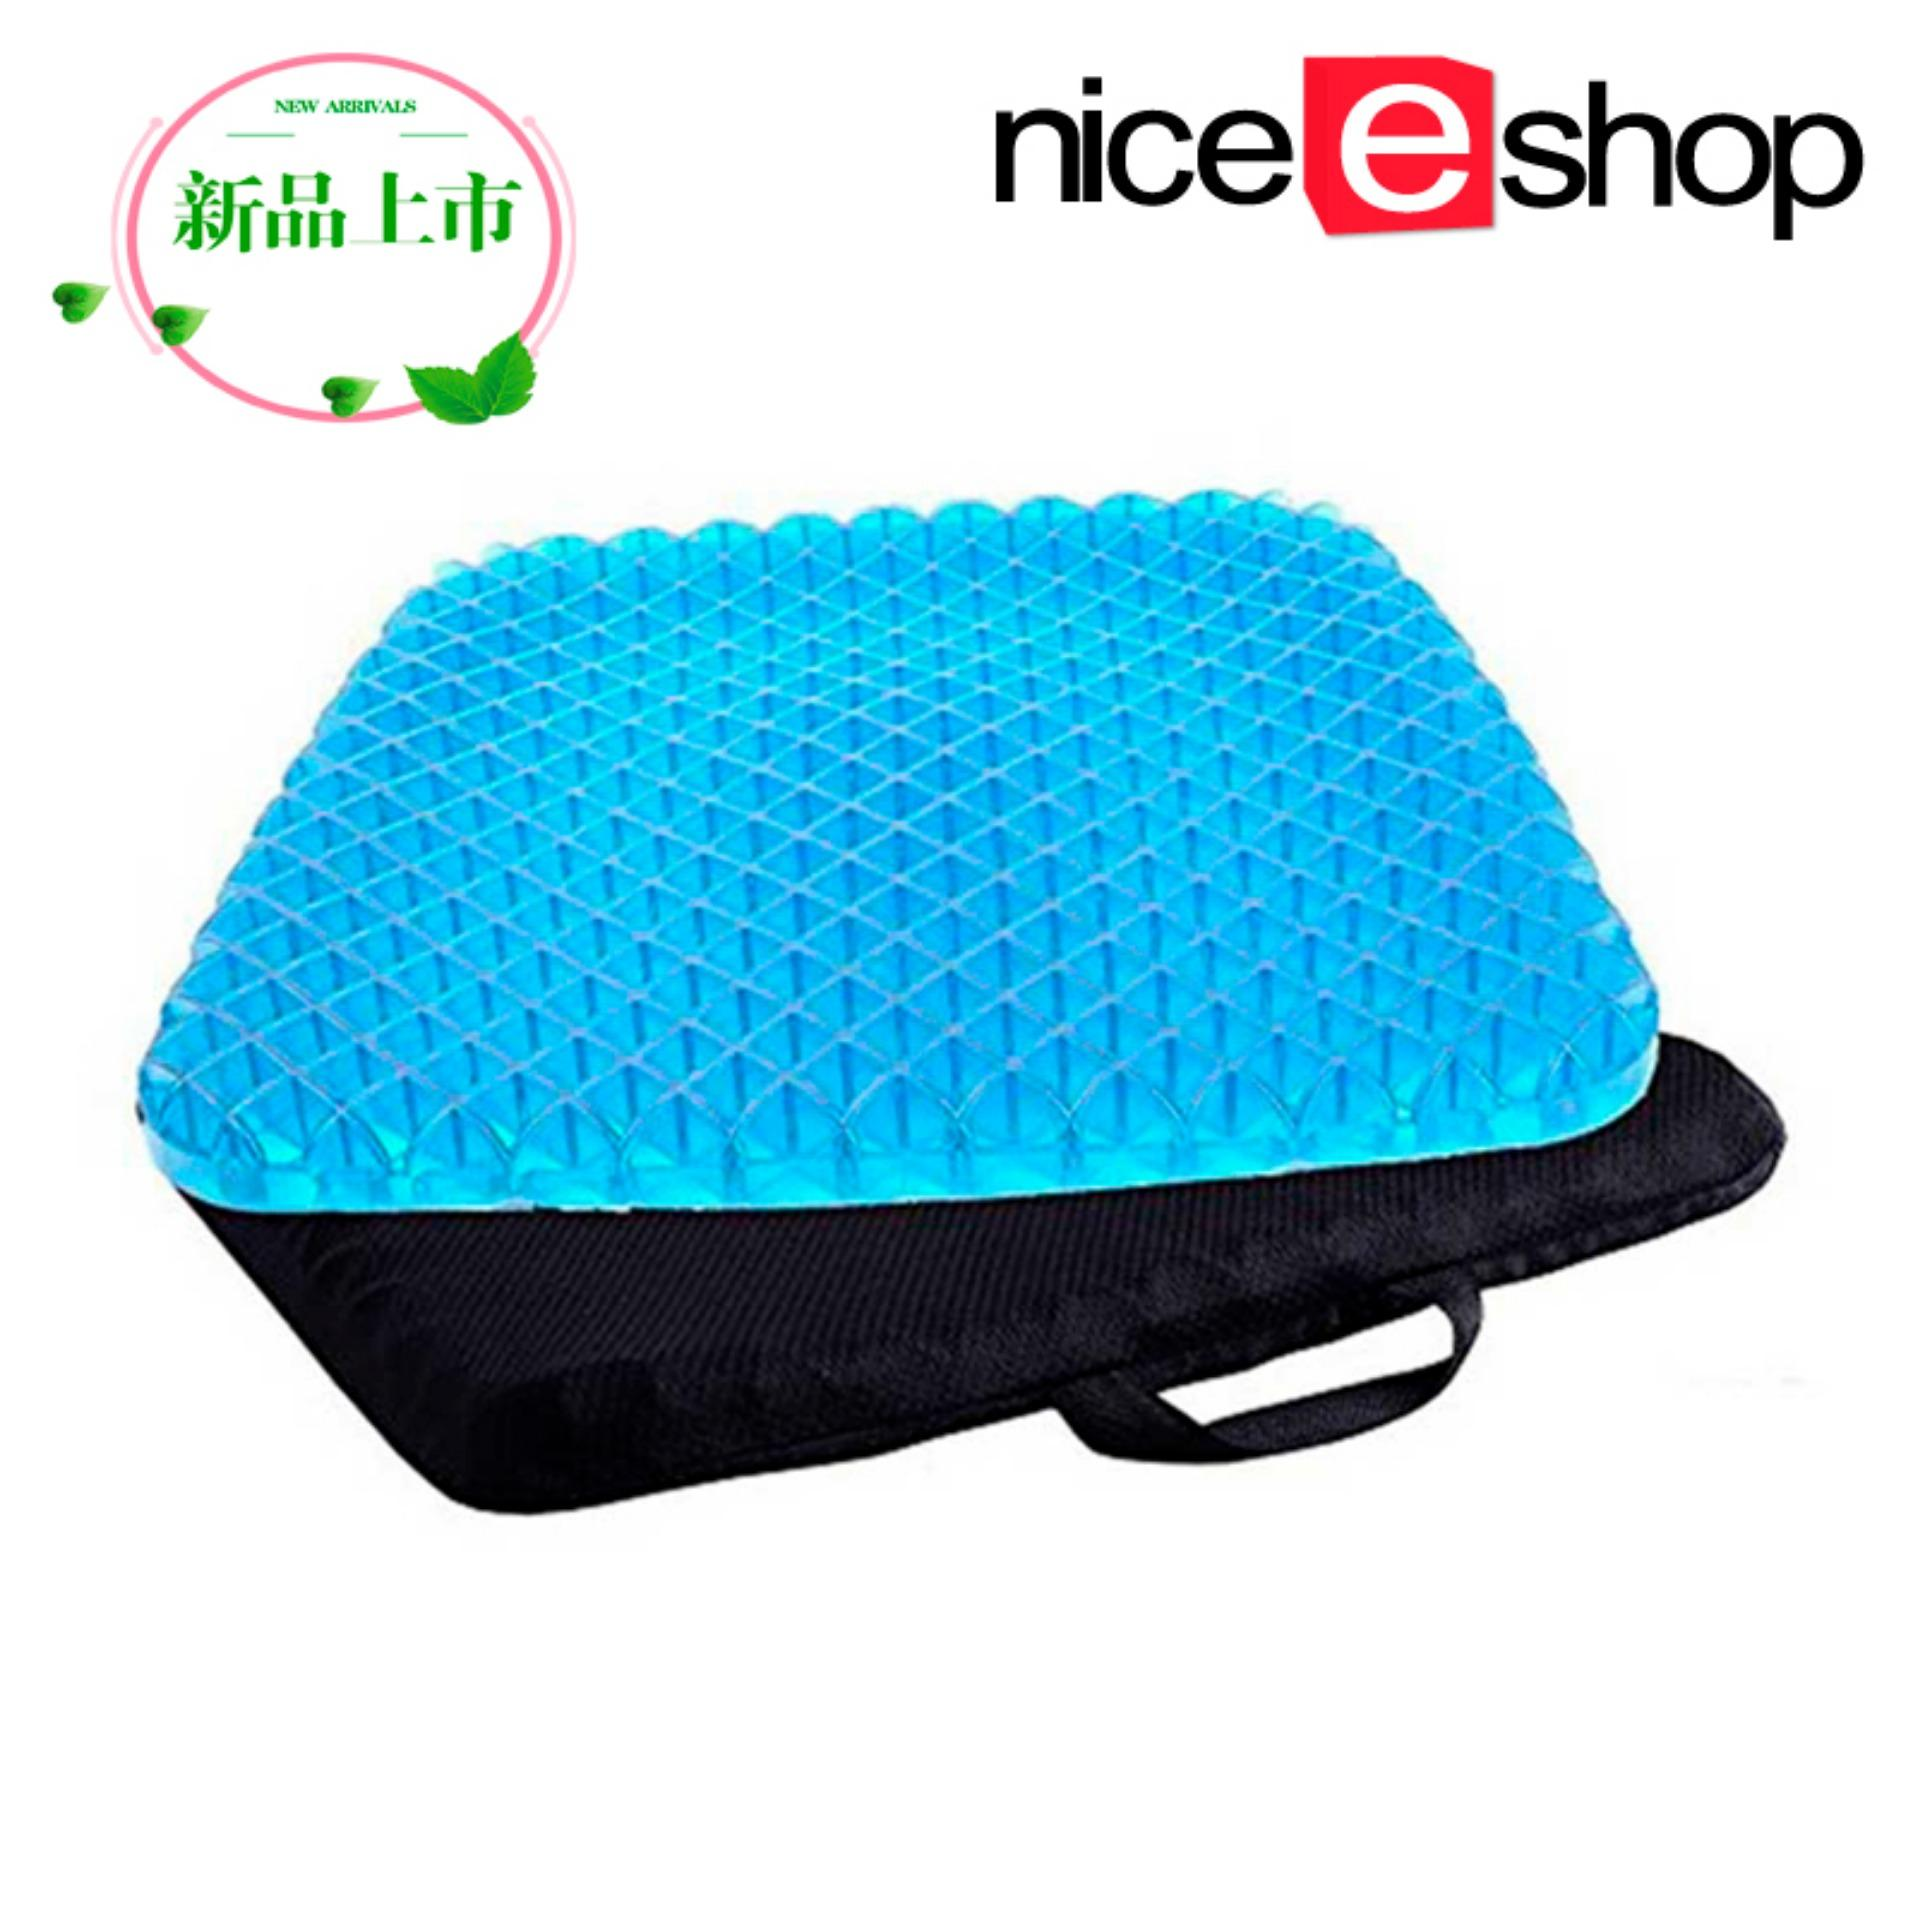 niceEshop Comfort Gel Seat Cushion Elastic Gel Cushion Seat Pad Pressure Absorbs Honeycomb Sitter with Black Cover for Chair Office